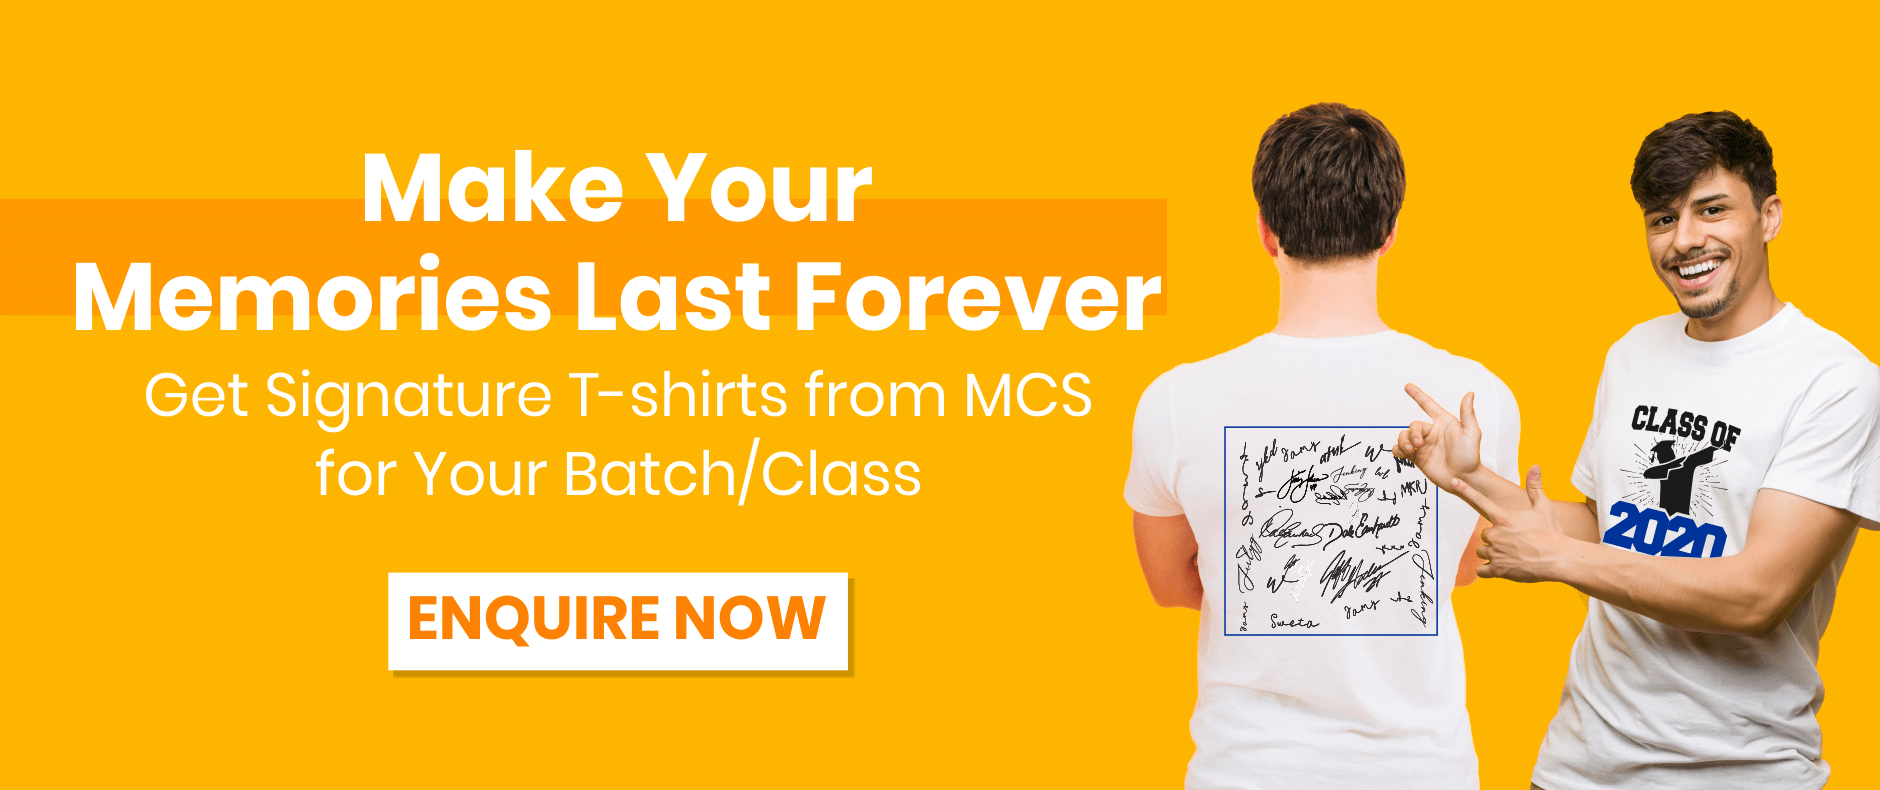 Mycampusstore Signature Day T-Shirts